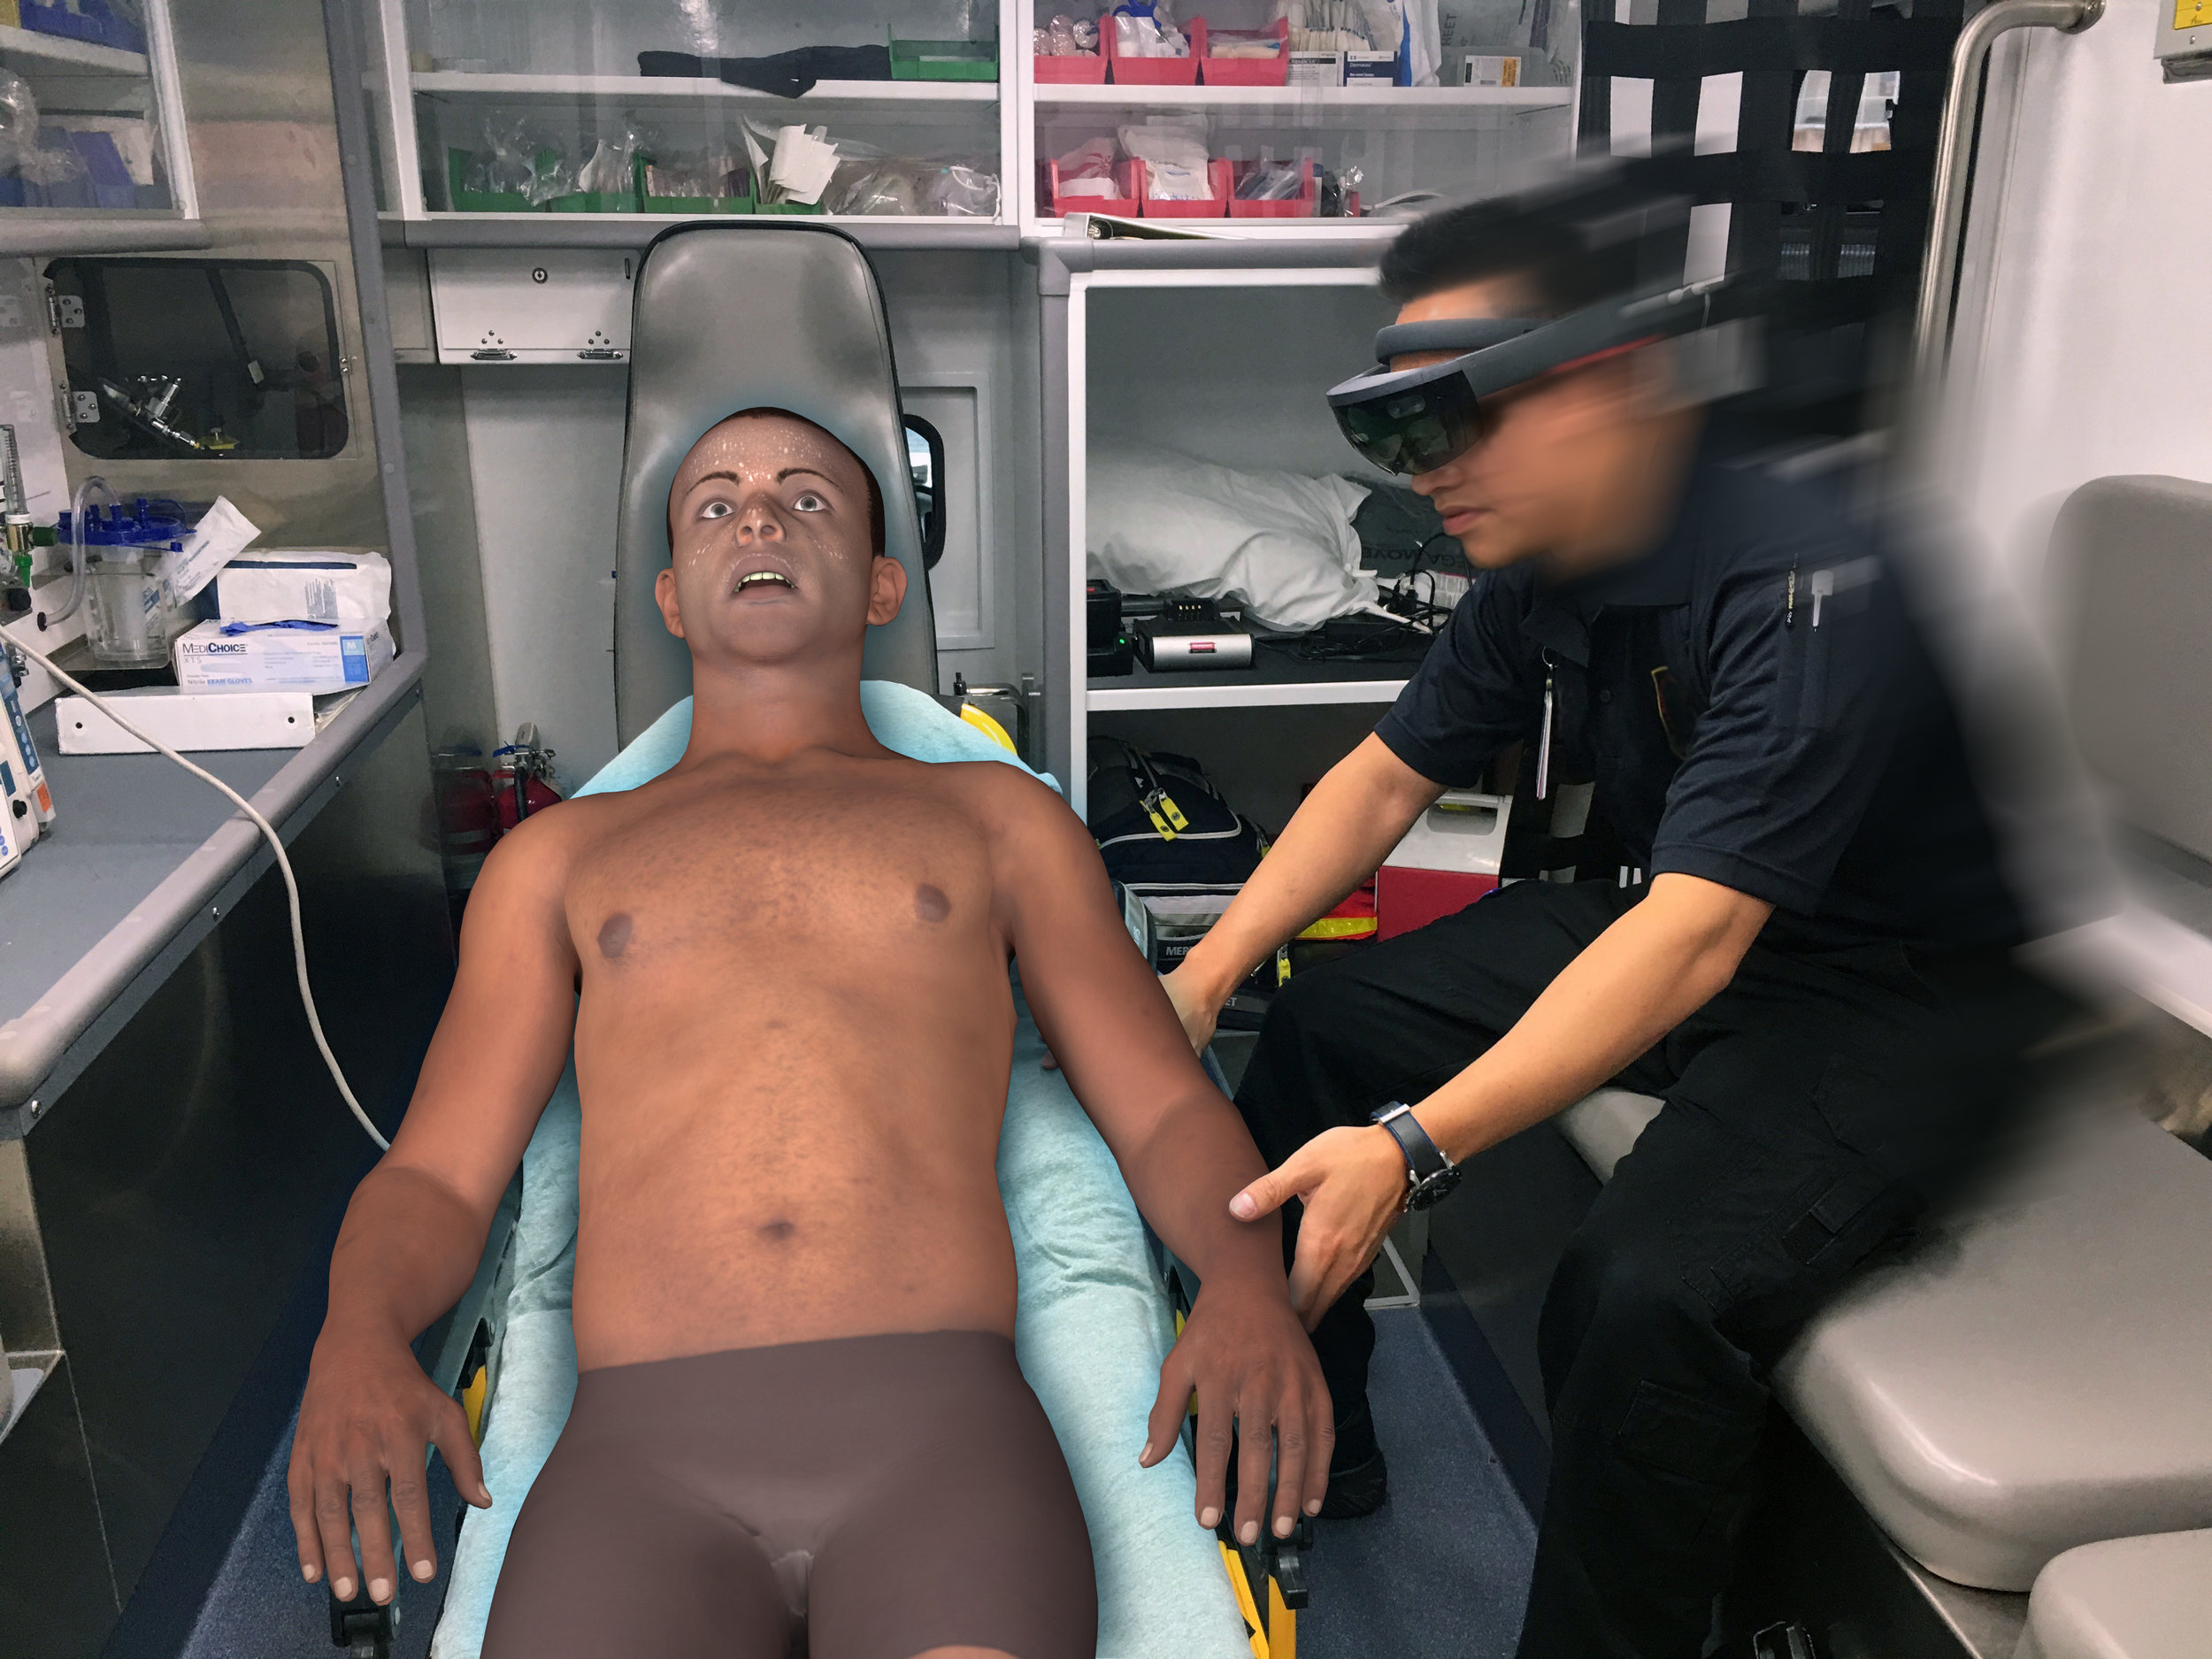 - Instead of classrooms or on-screen training modules, PerSim® empowers trainees to practice caring for critically ill patients where first responders actually provide life-saving care: at the incident site, in the back of an ambulance, on a gurney in transit.